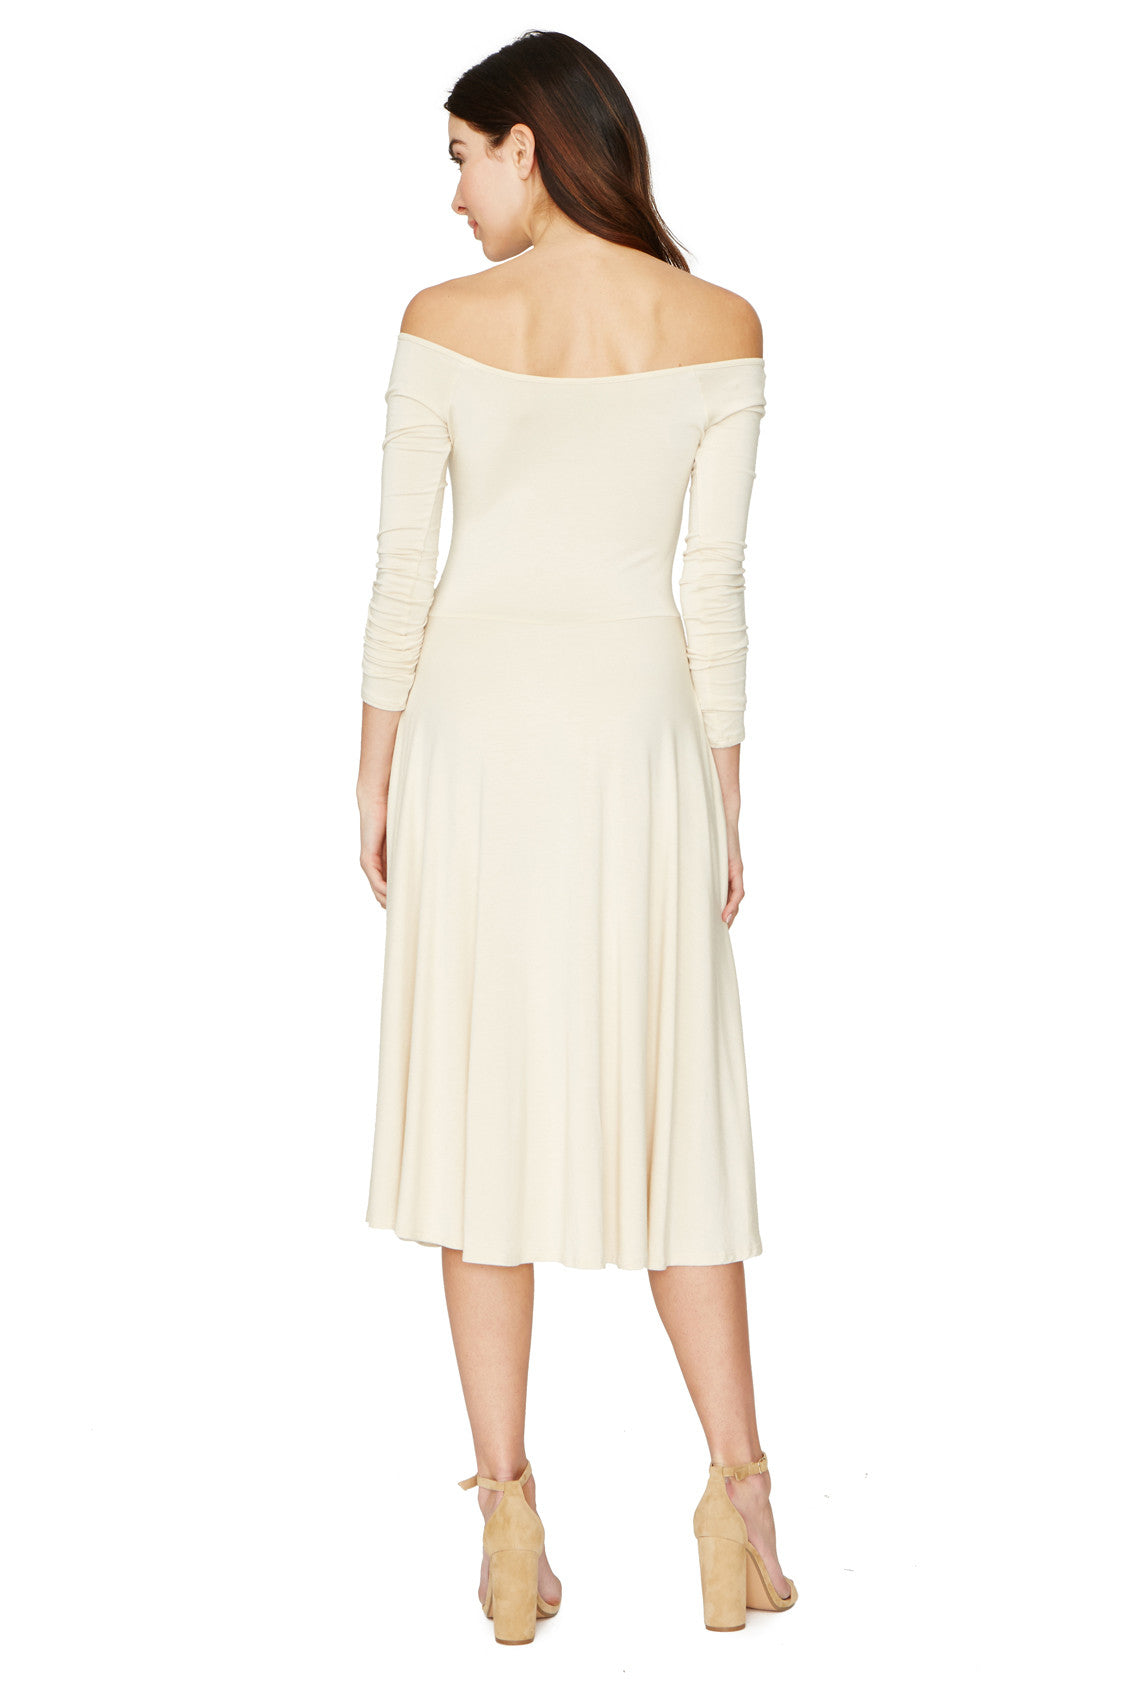 LONG SLEEVE LOVELY DRESS - CREAM